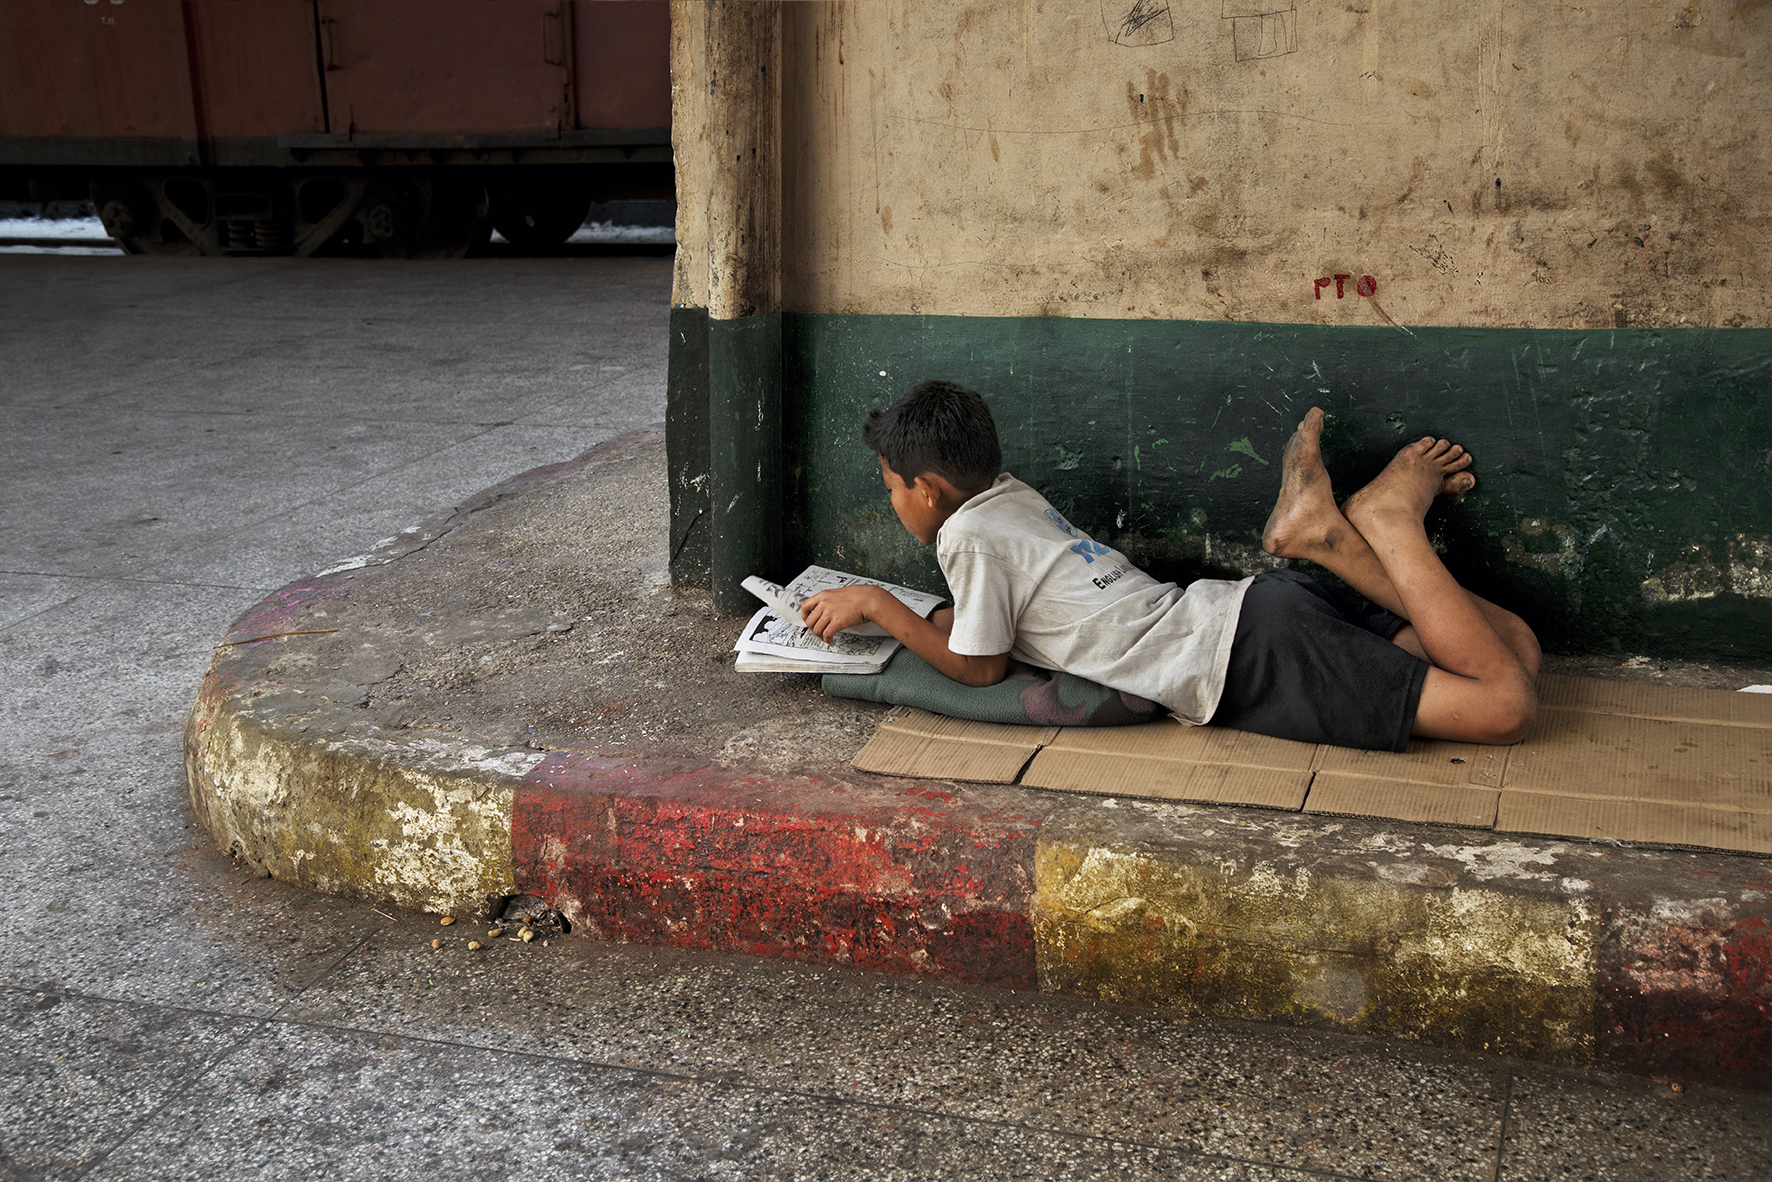 DSC_4524, Burma/Mynamar, 01/2014, BURMA-10711. A boy lies on the sidewalk and reads.  Retouched_Sonny Fabbri 05/21/2014